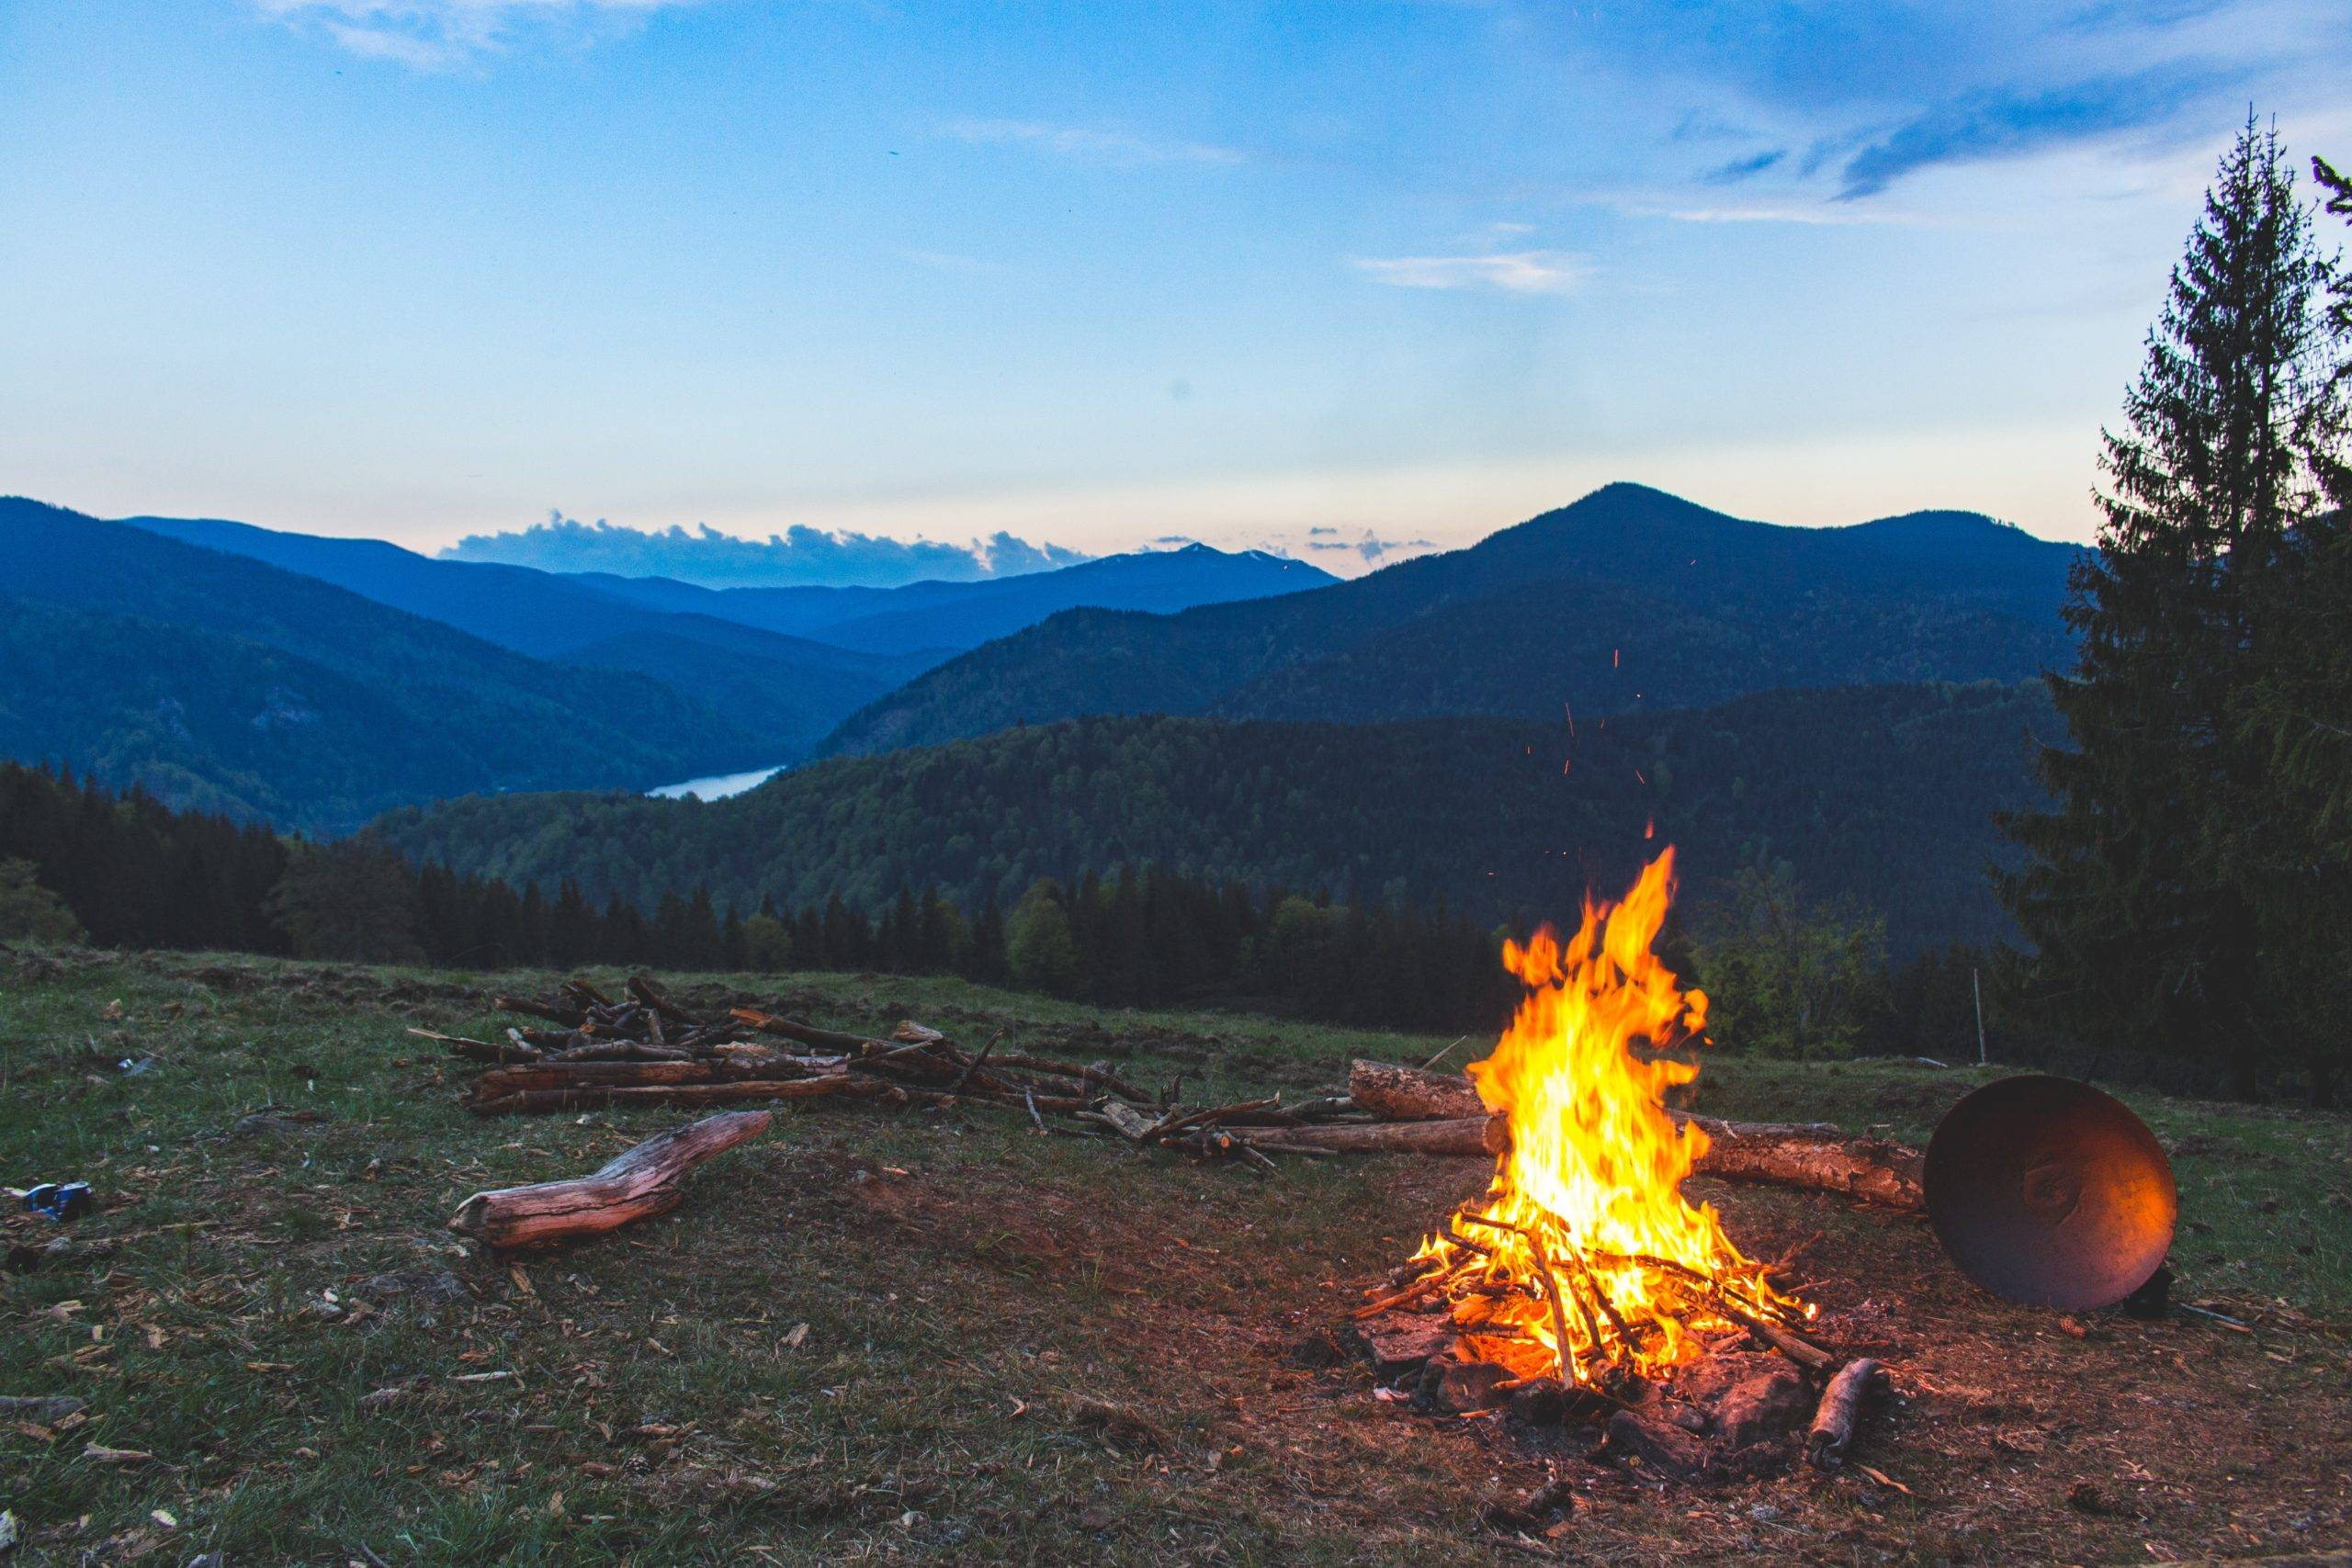 campfire burning in the mountains